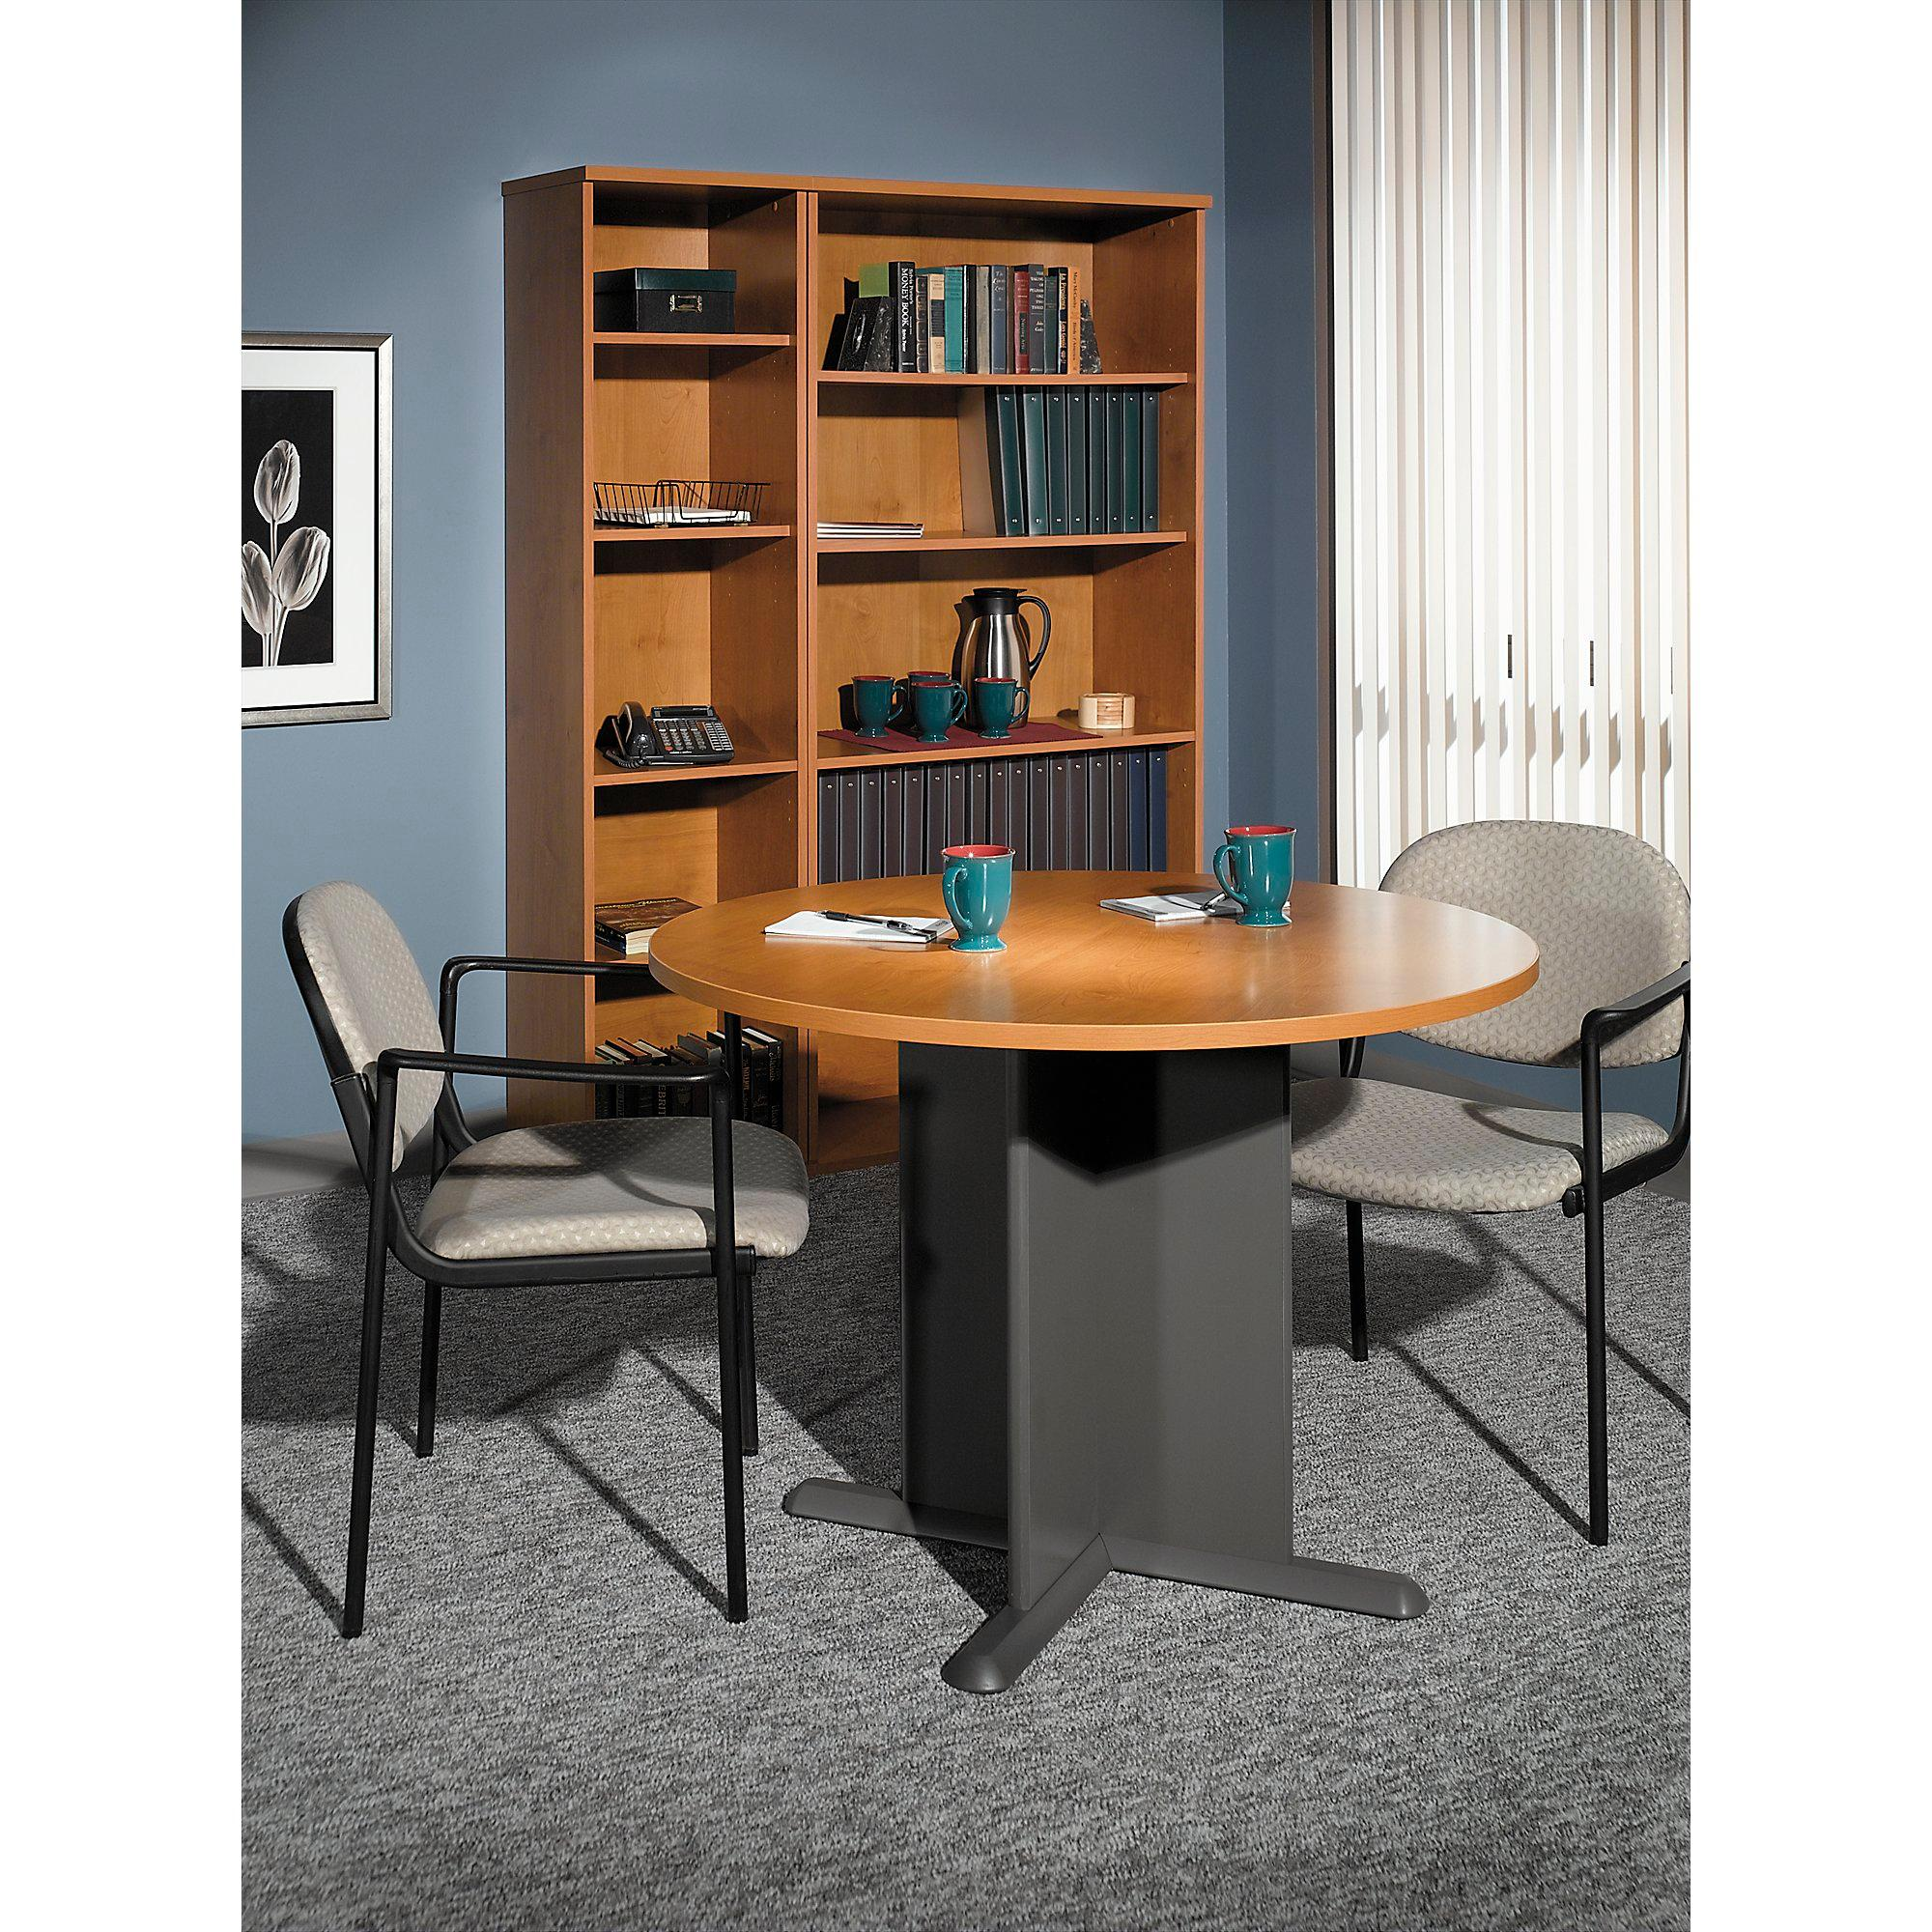 cherry barn office chair buy black online furniture desk with off ladder bush pottery wooden